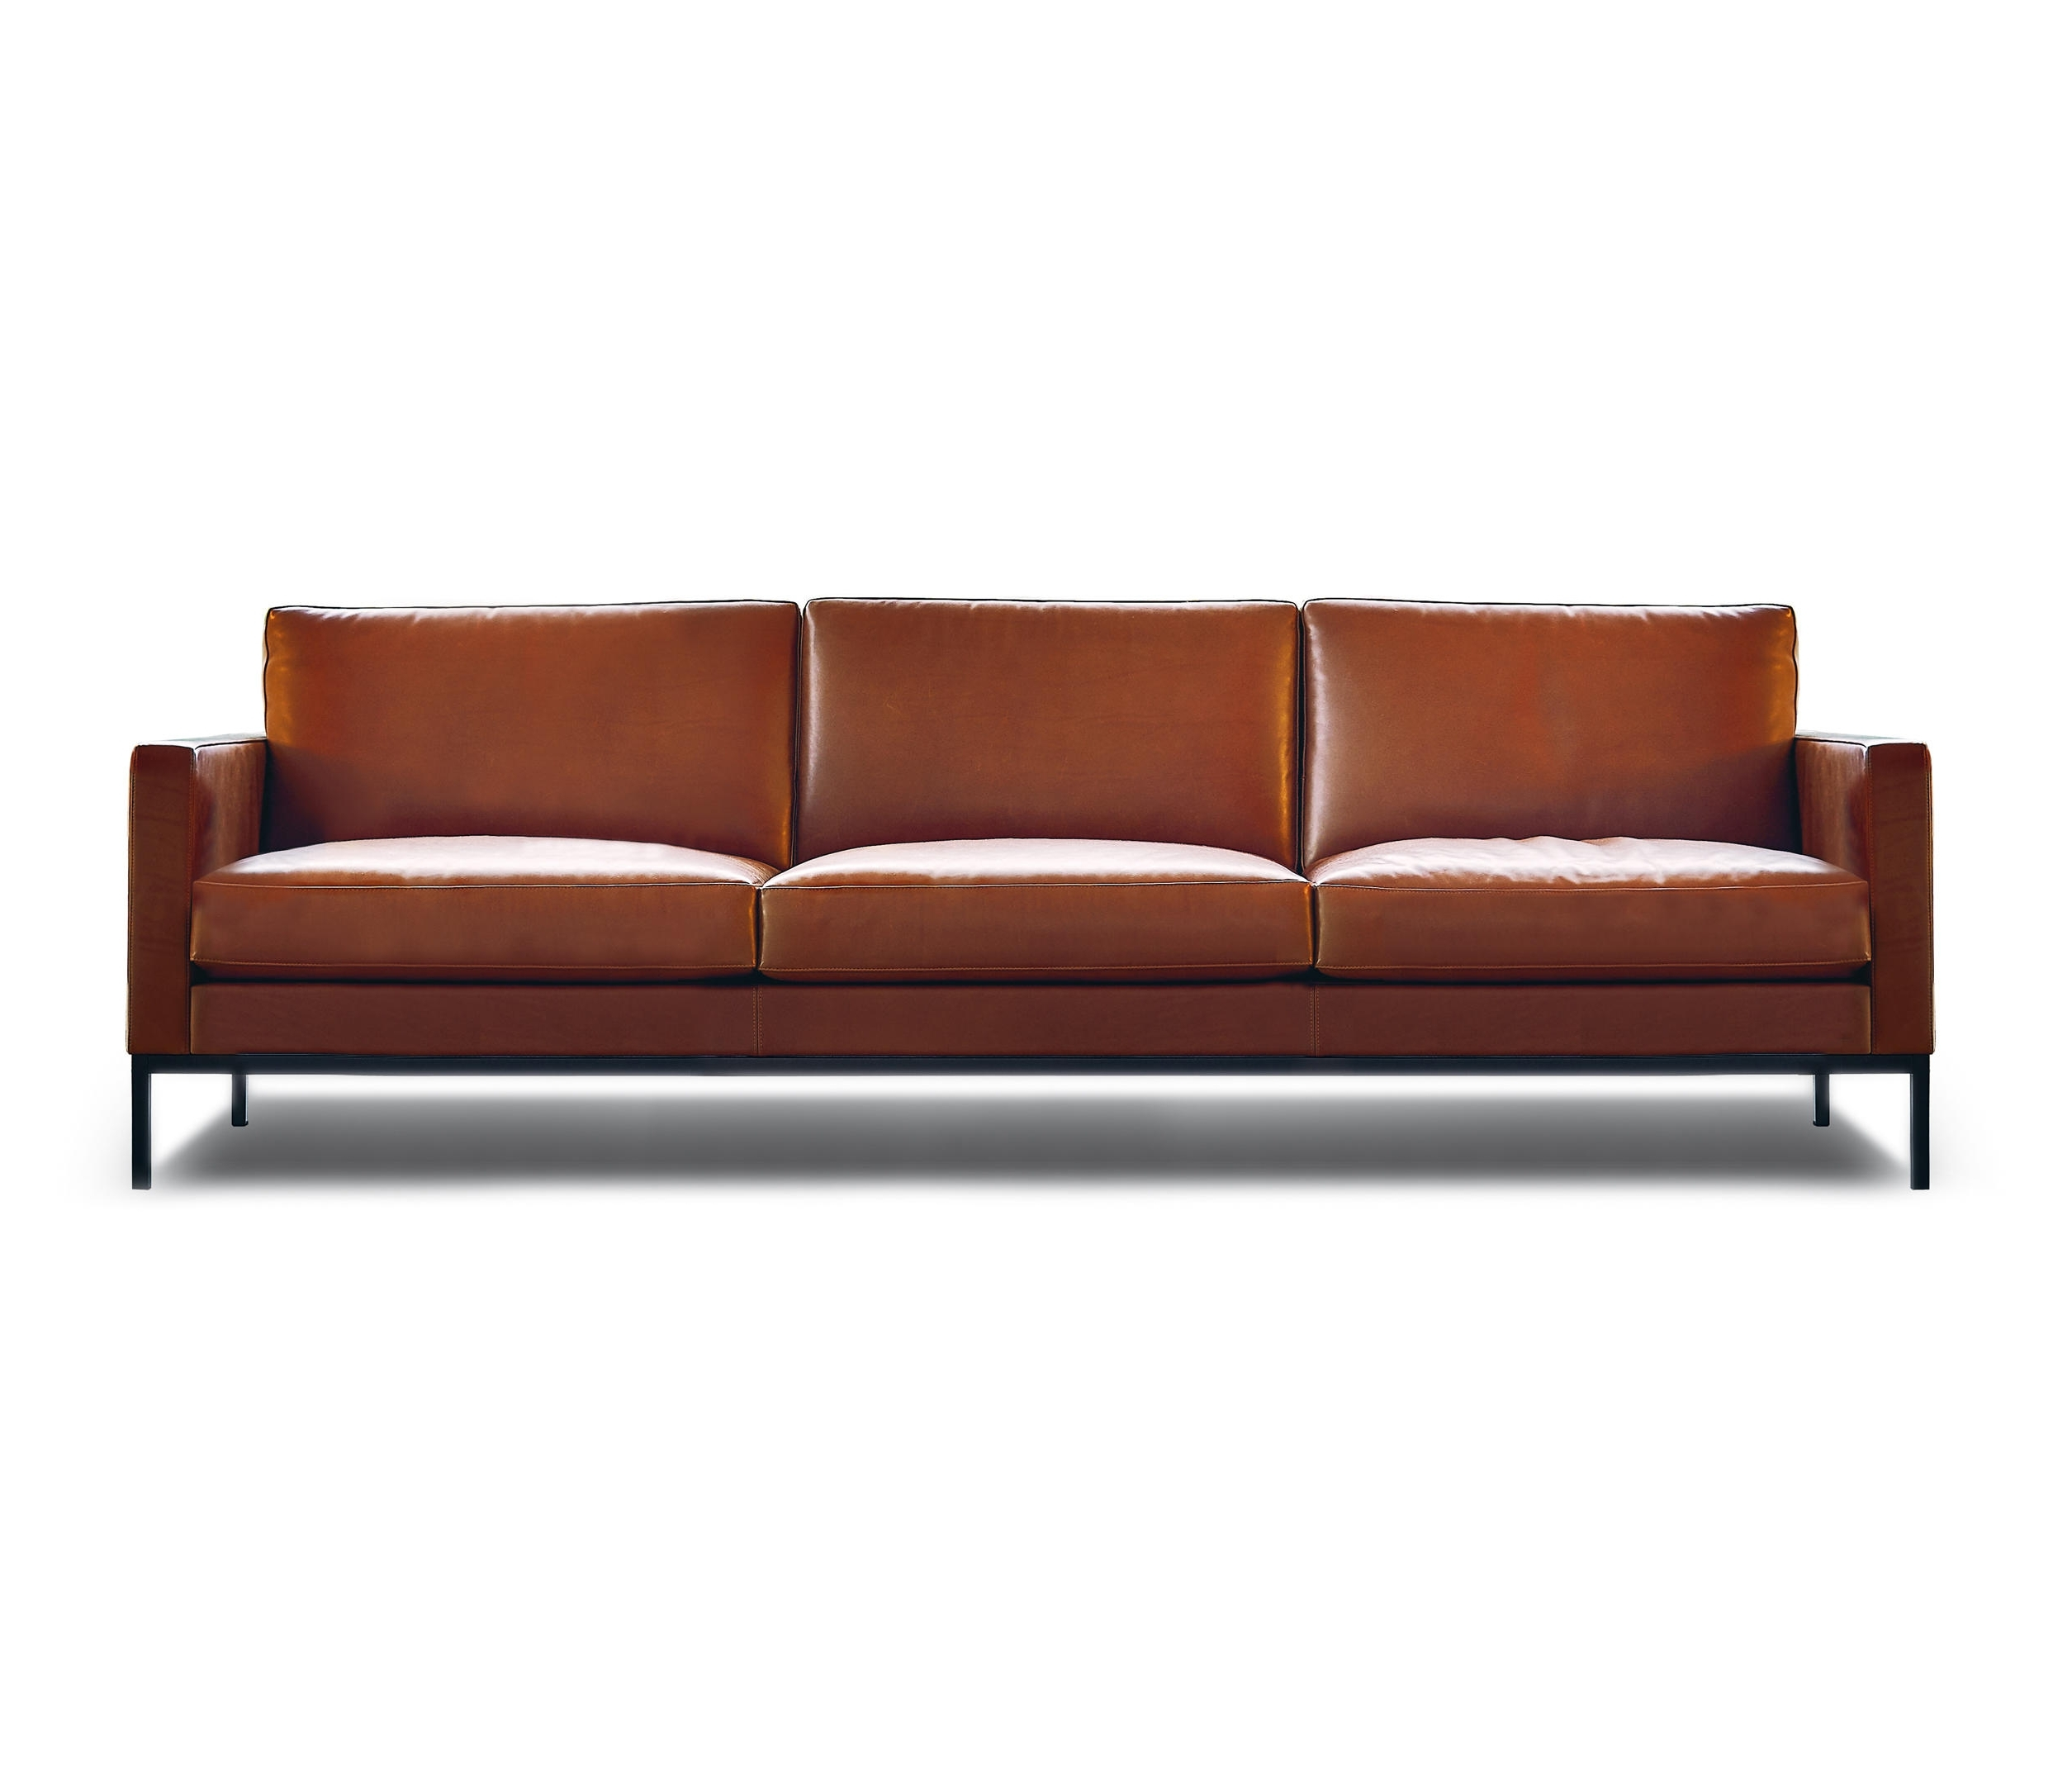 Florence Knoll 3 Seater Sofas Within Popular Florence Knoll Lounge 3 Seat Sofa – Lounge Sofas From Knoll (View 10 of 20)